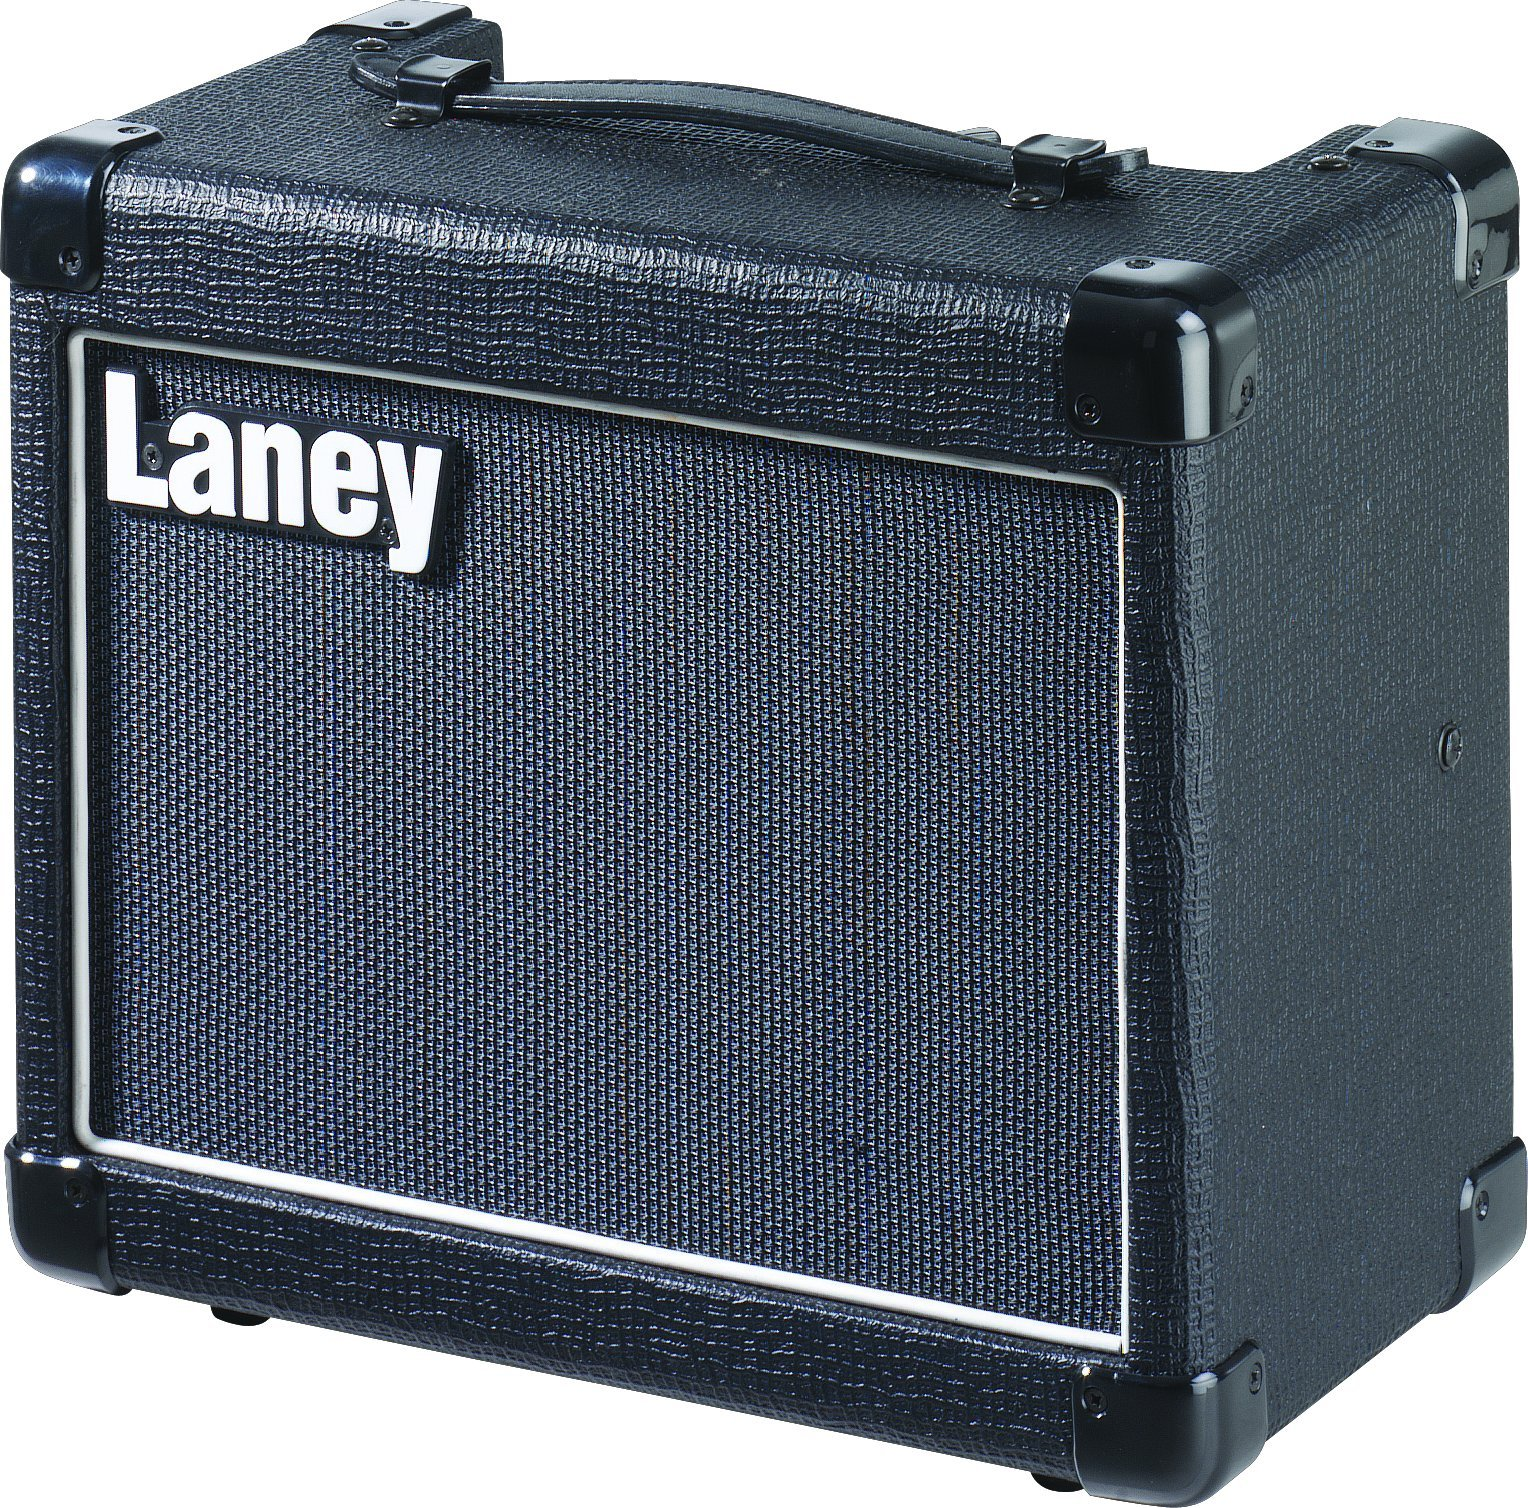 Laney LG12 12 Watt RMS Guitar Combo by Laney